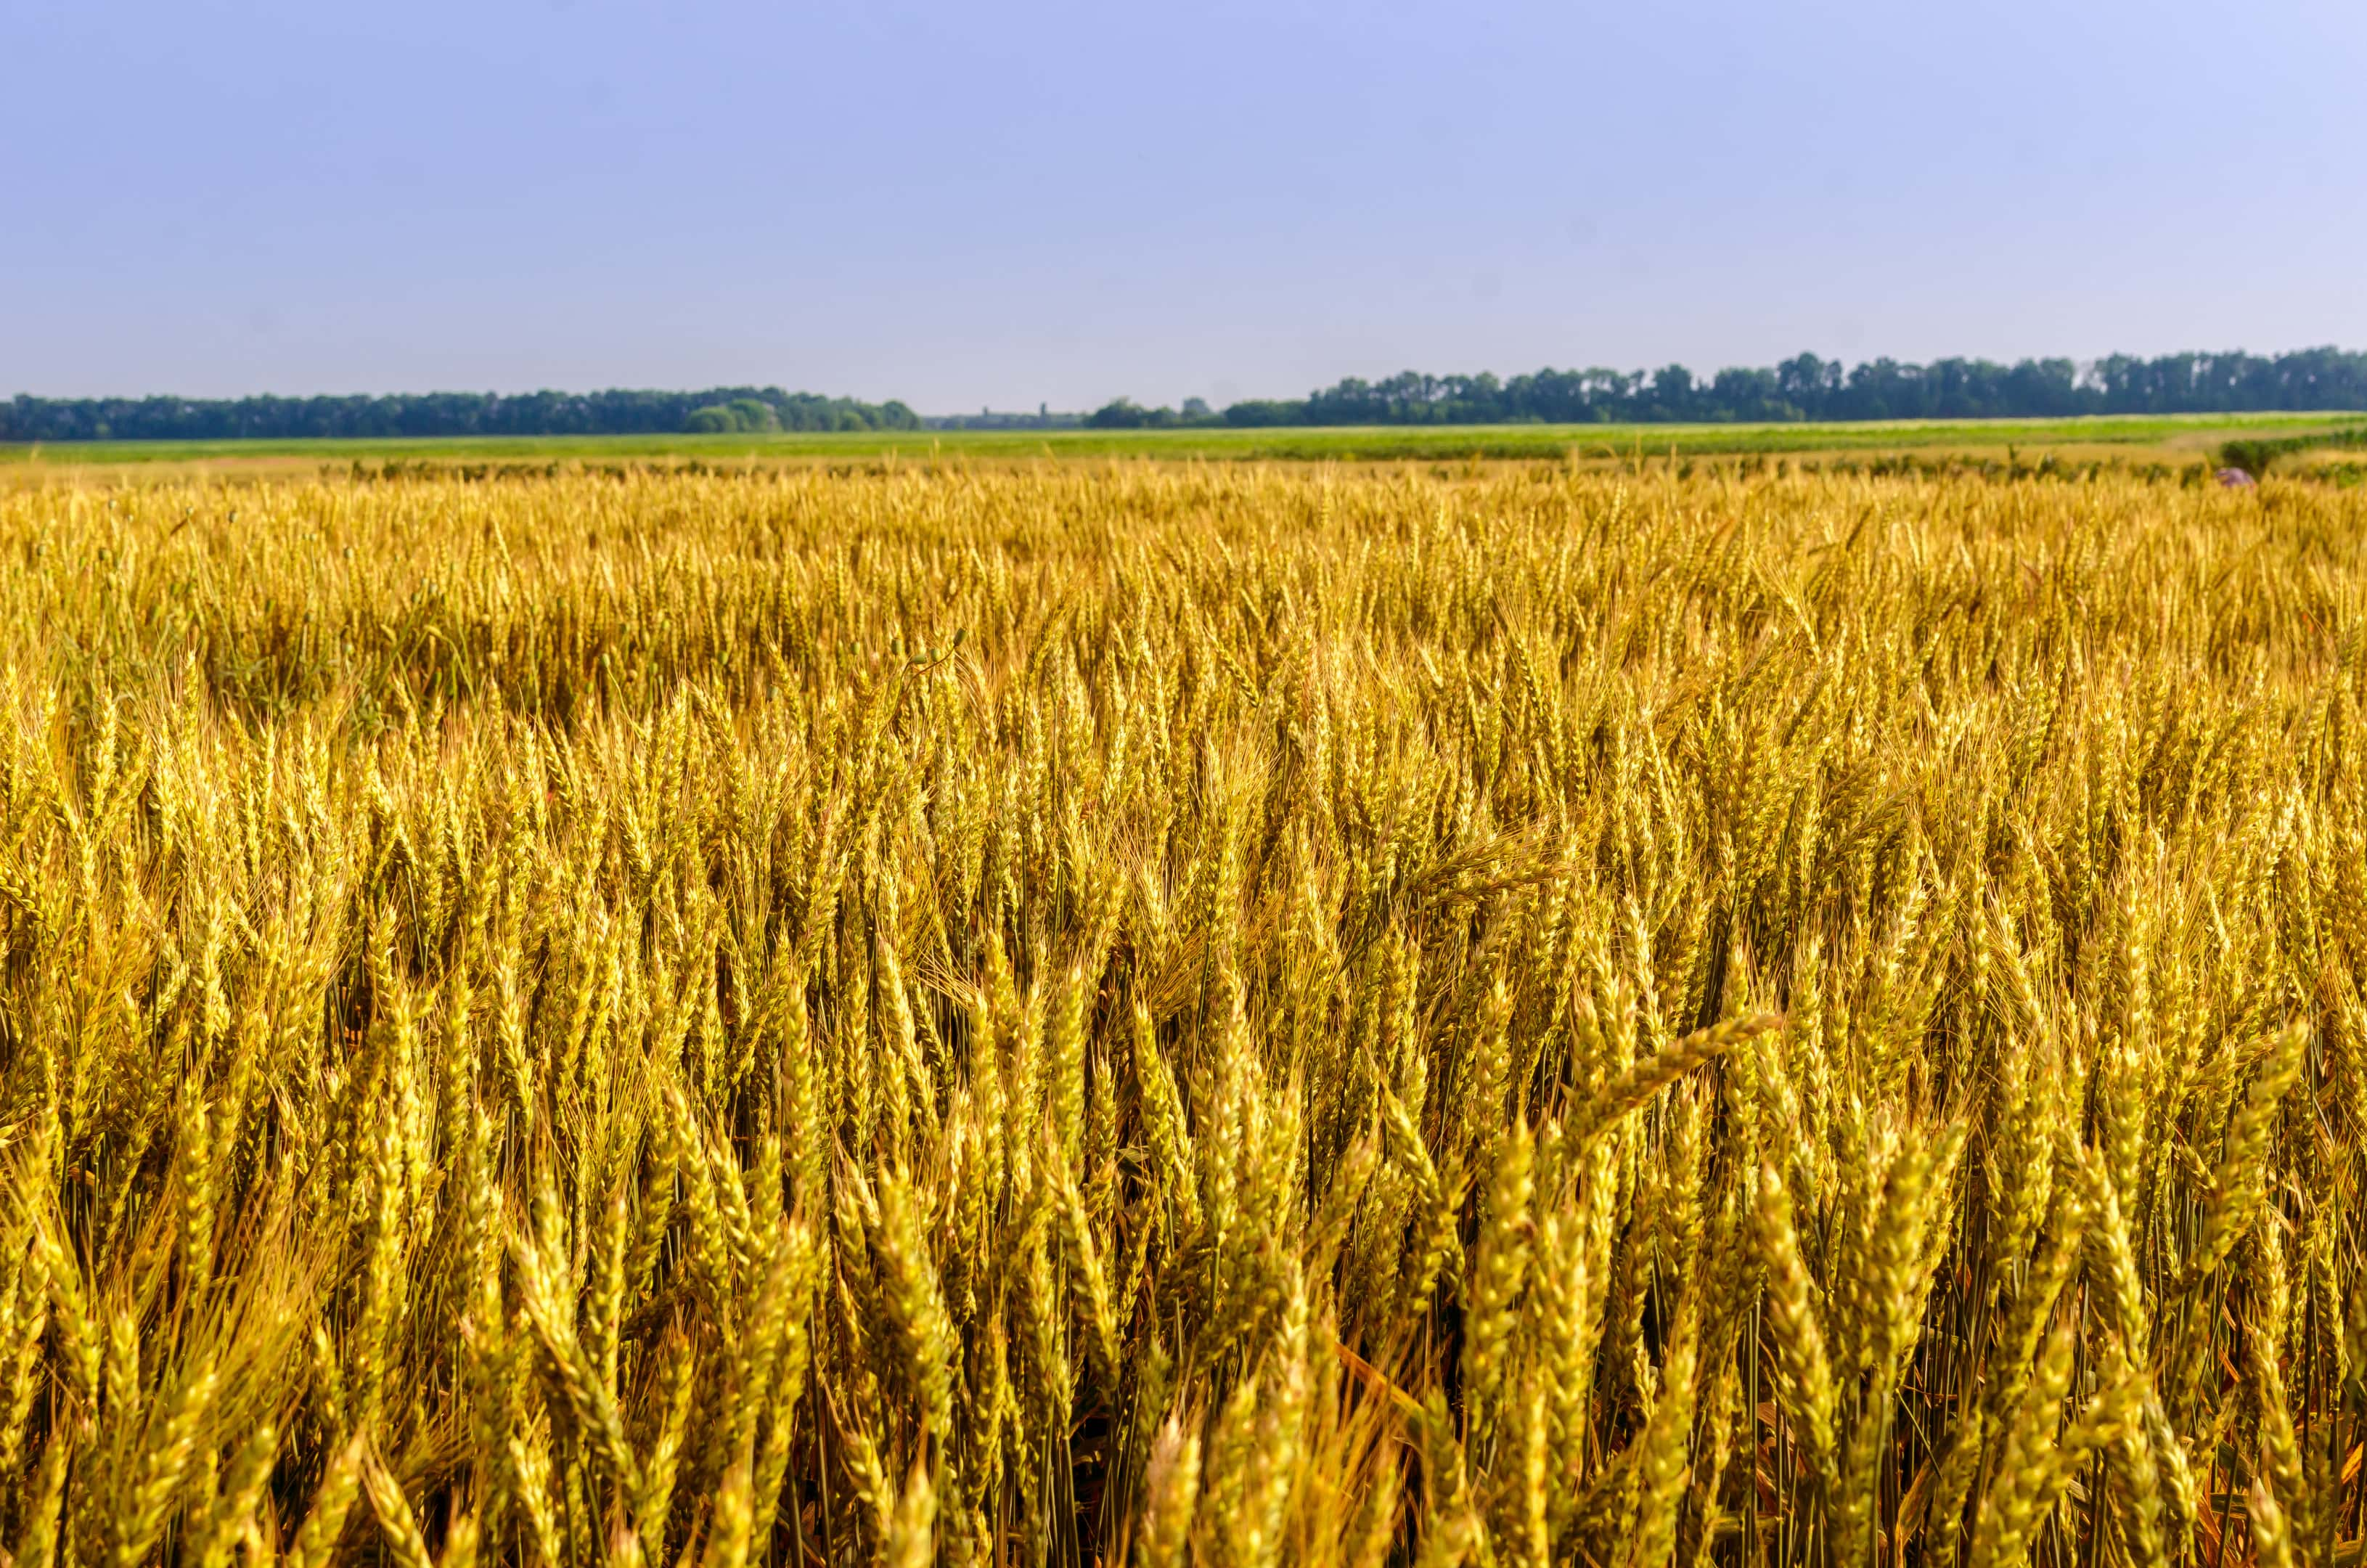 The boundless golden spelt field